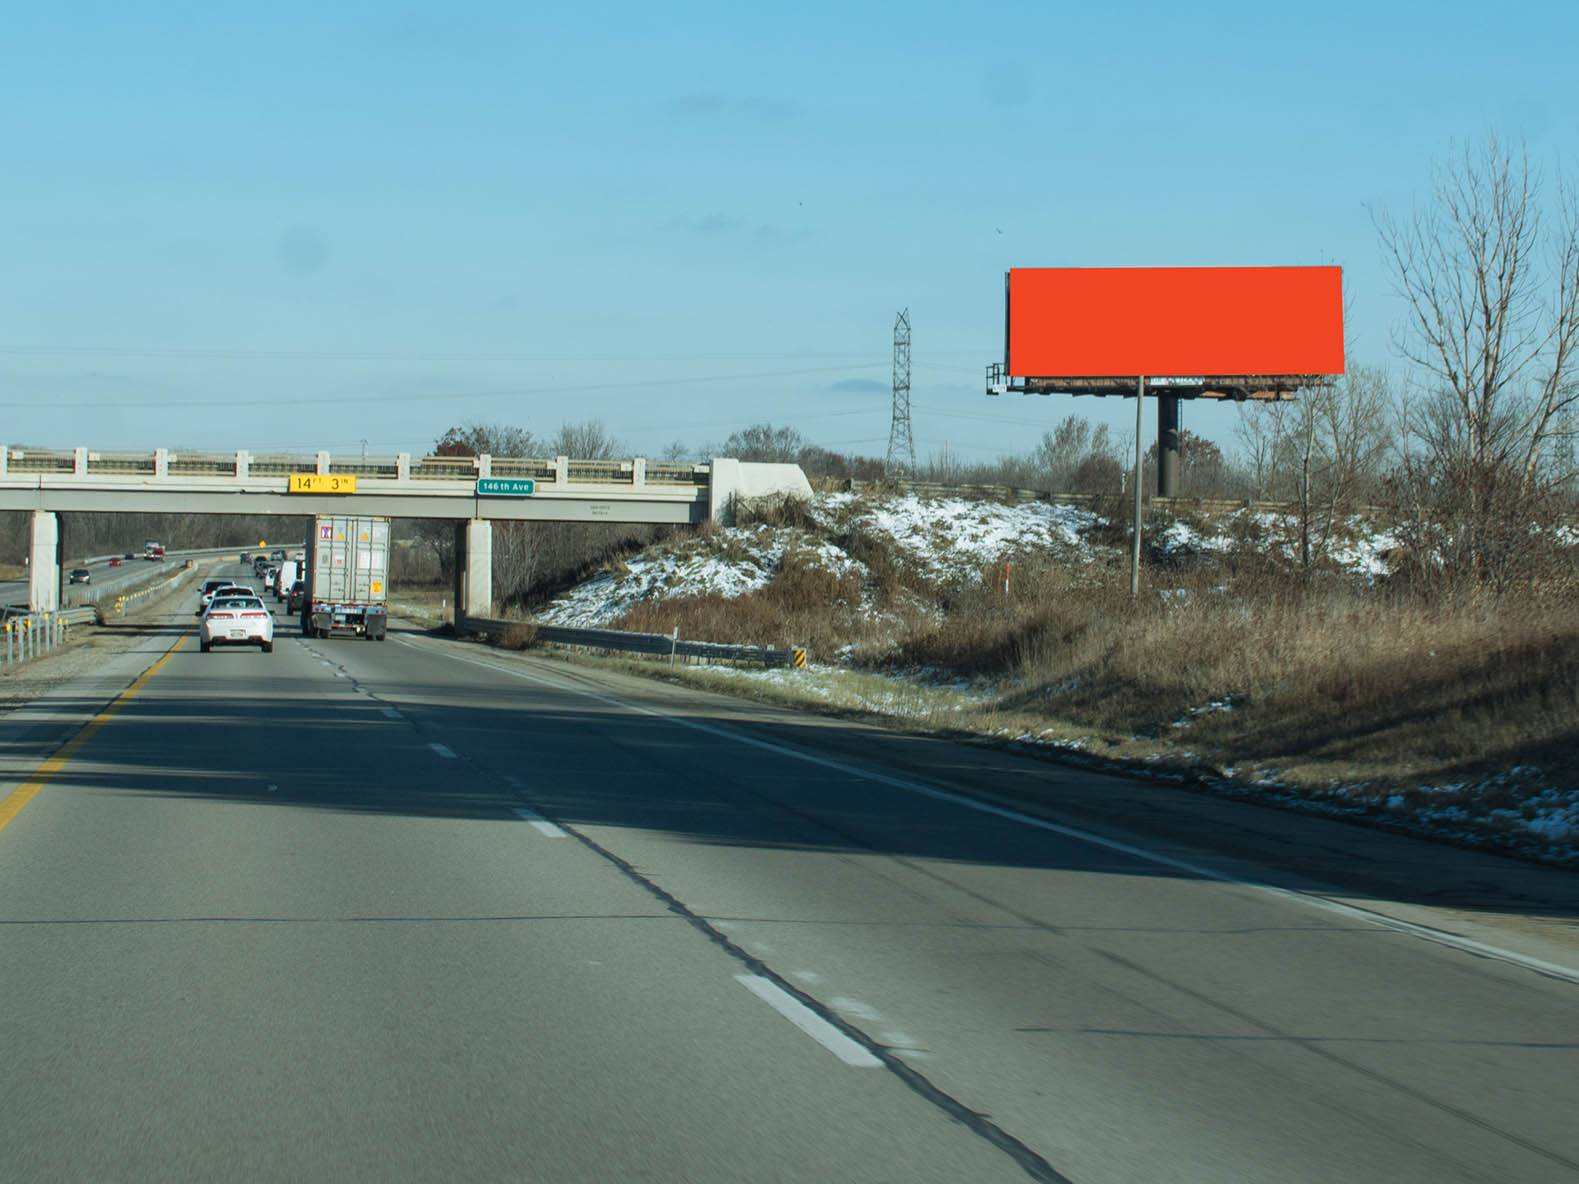 Billboard 101 South (14 x 48) - Geopath: 30655470